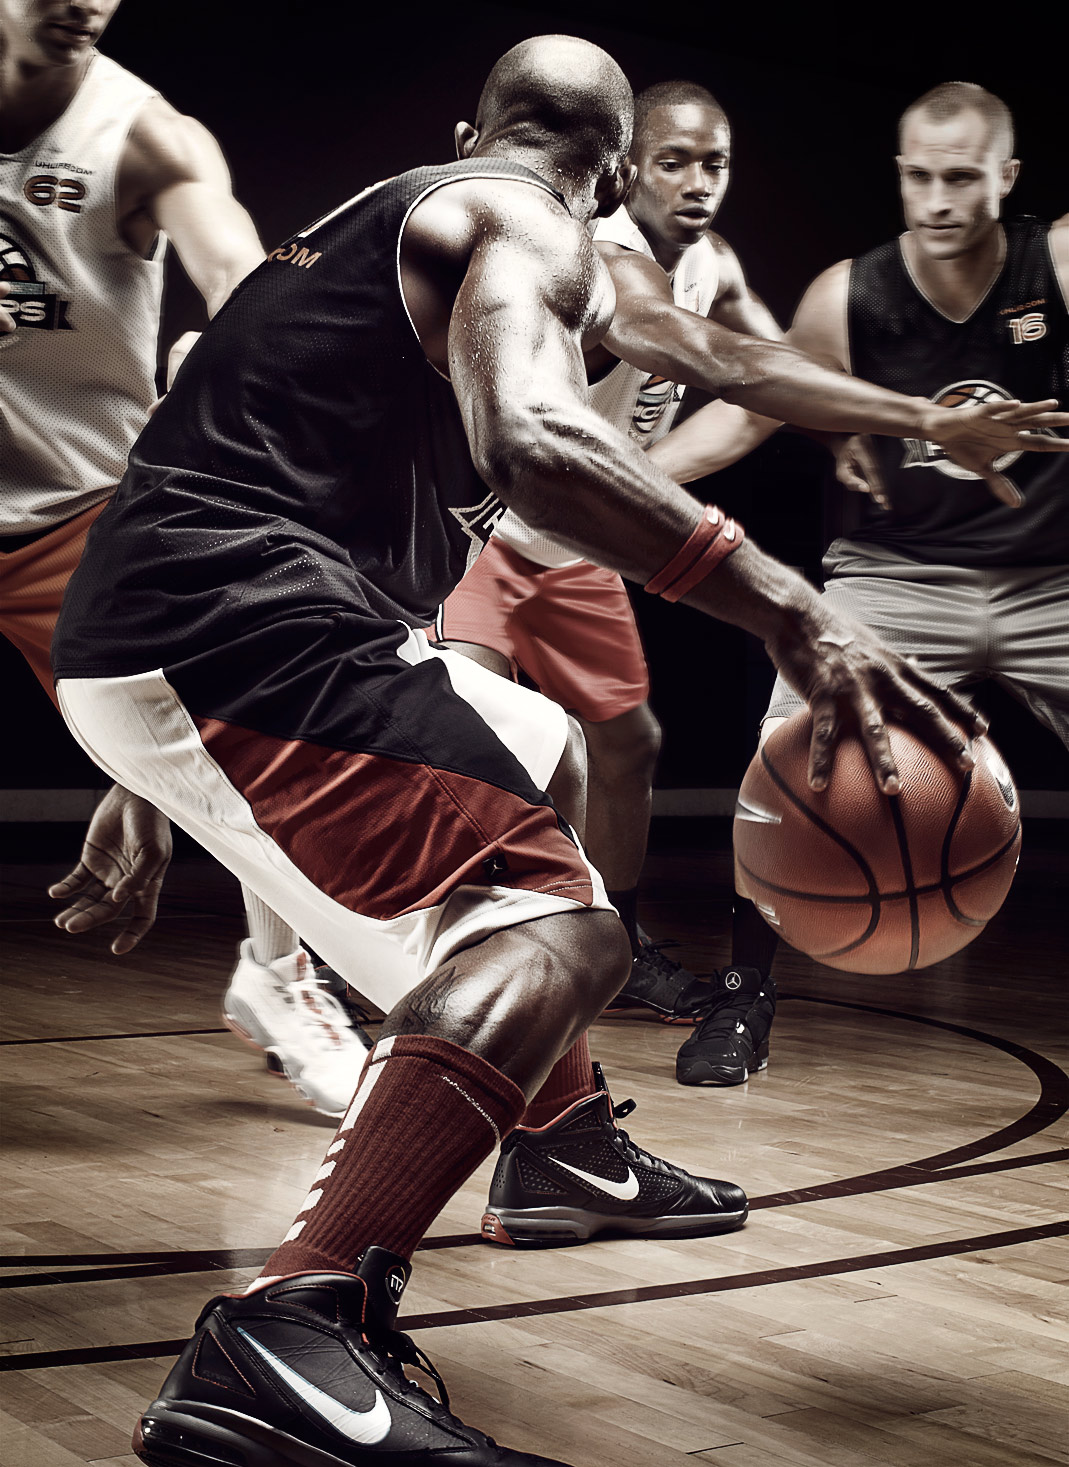 Basketball_Action_035-matt-crop.jpg